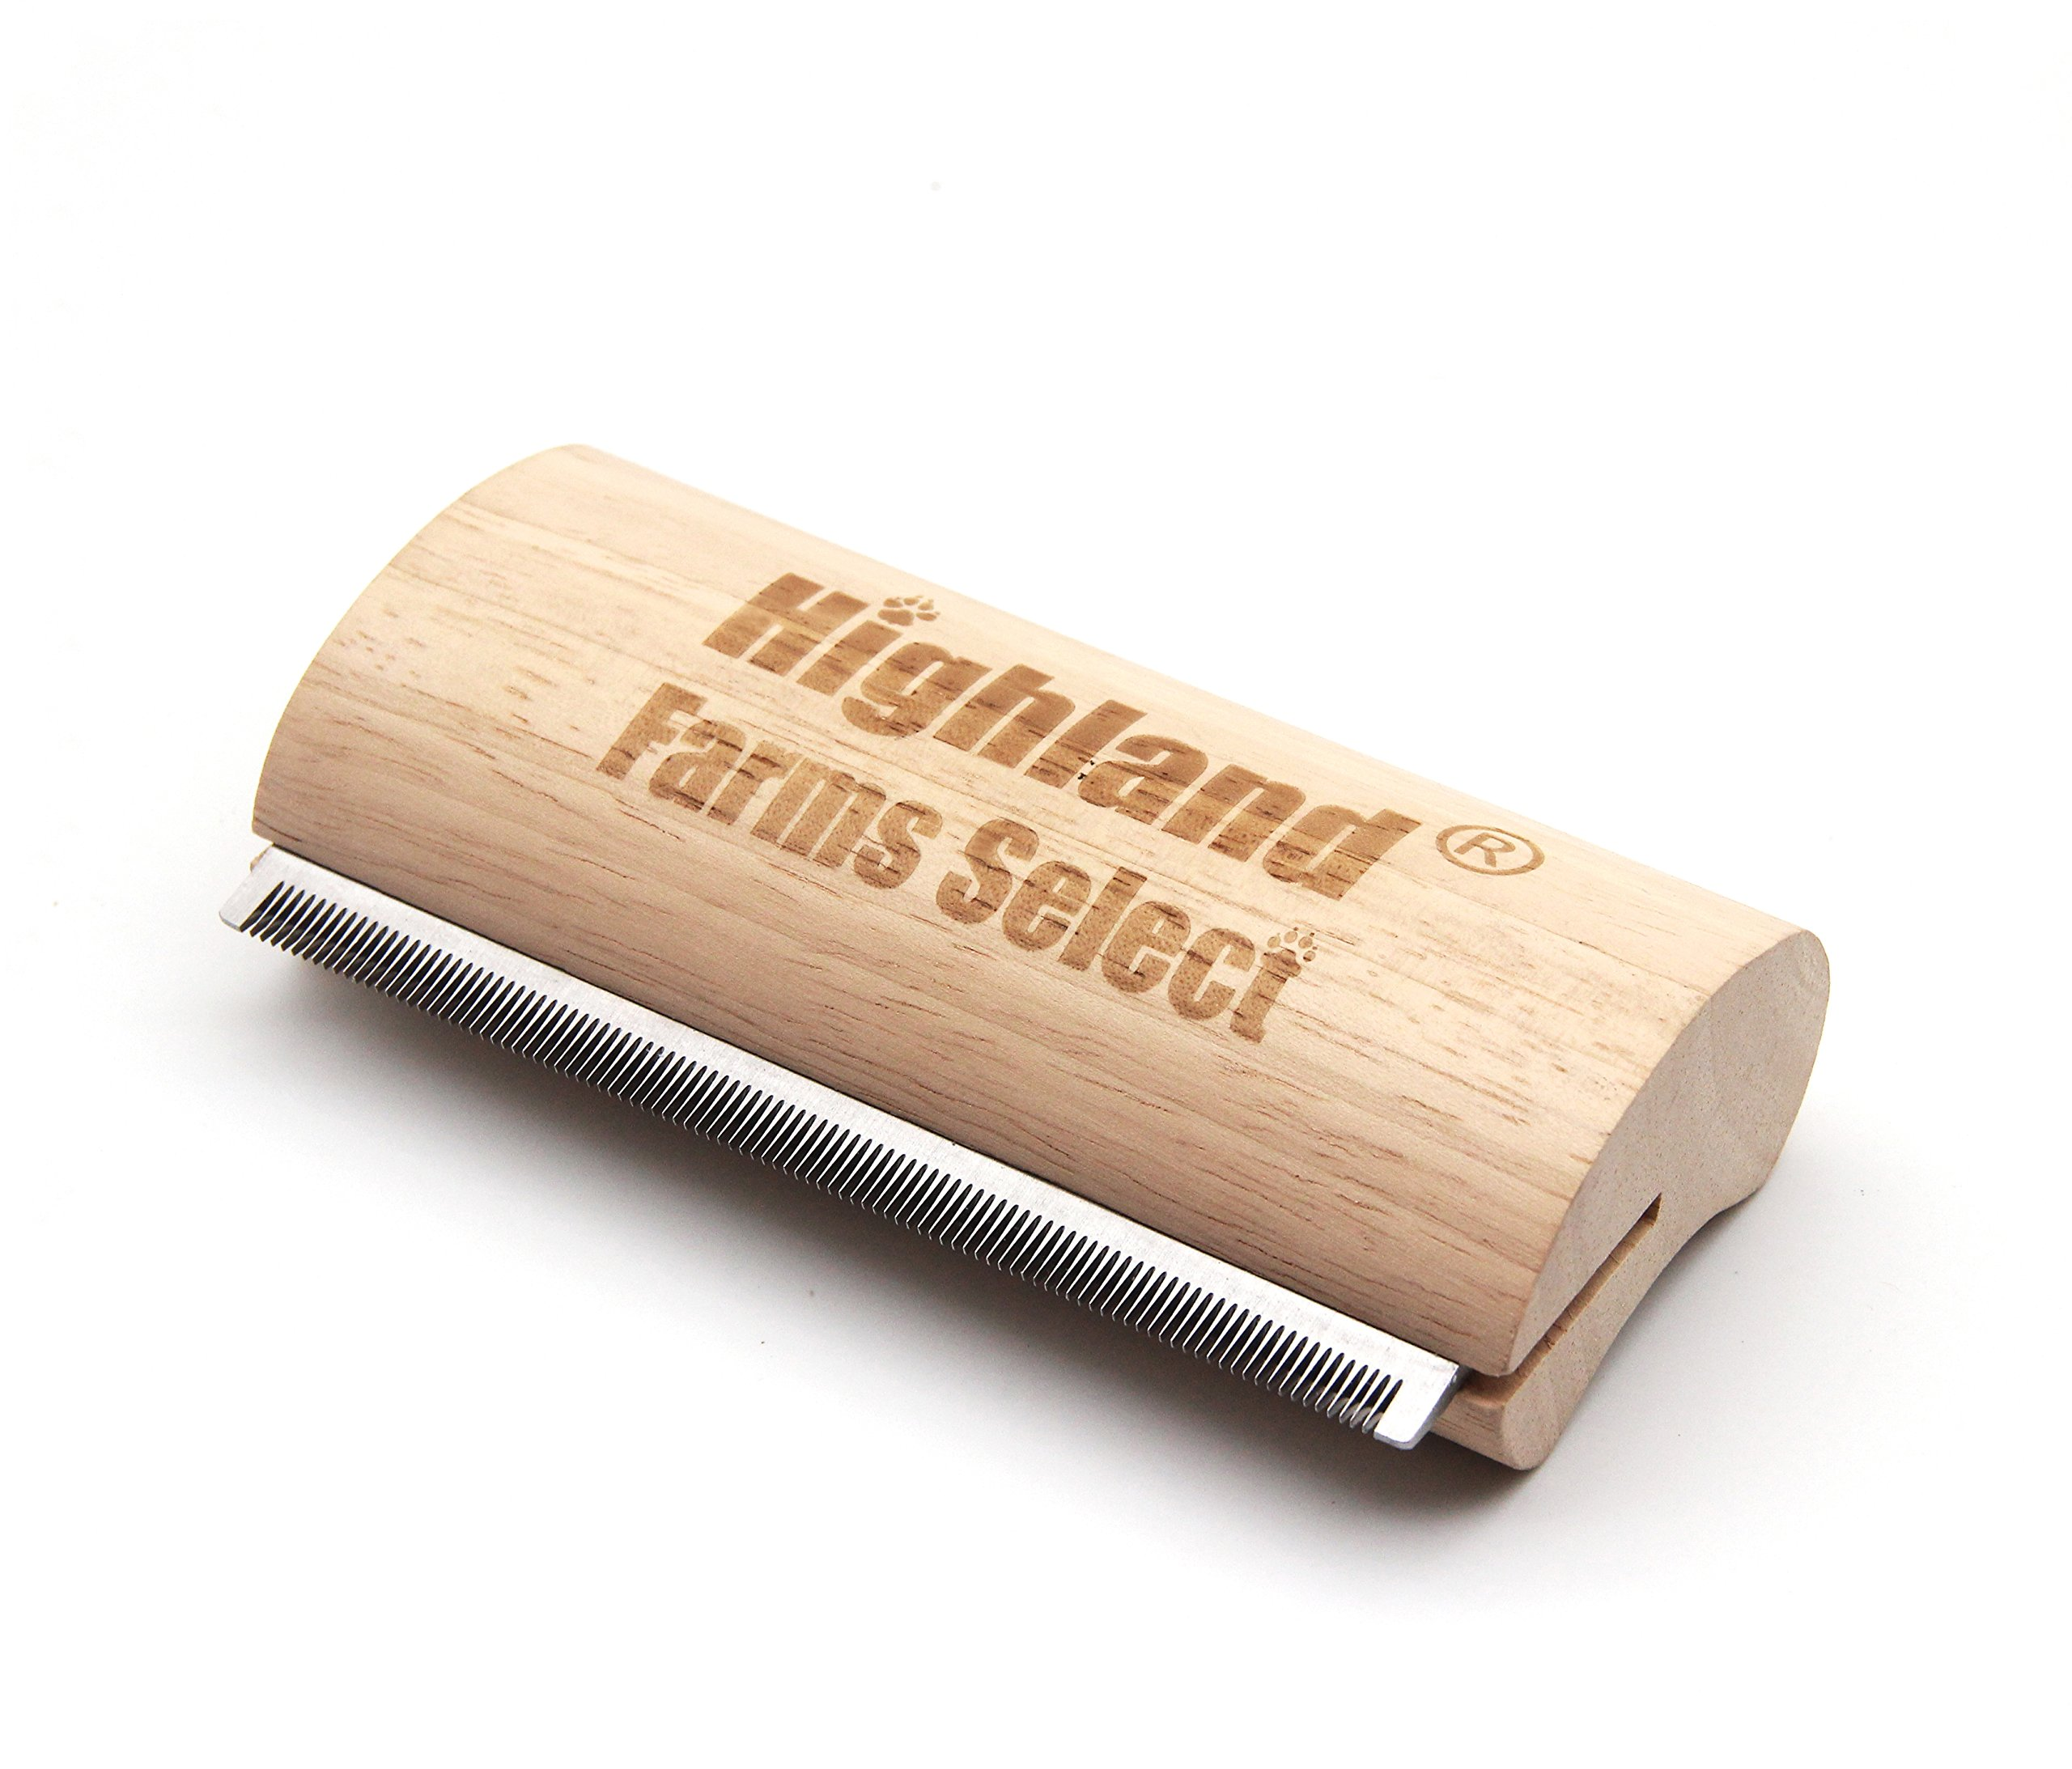 Highland Farms Select Ergonomic Wooden Design Deshedding Grooming Tool, Professional Pet Grooming Brush for dogs, cats and horses, L